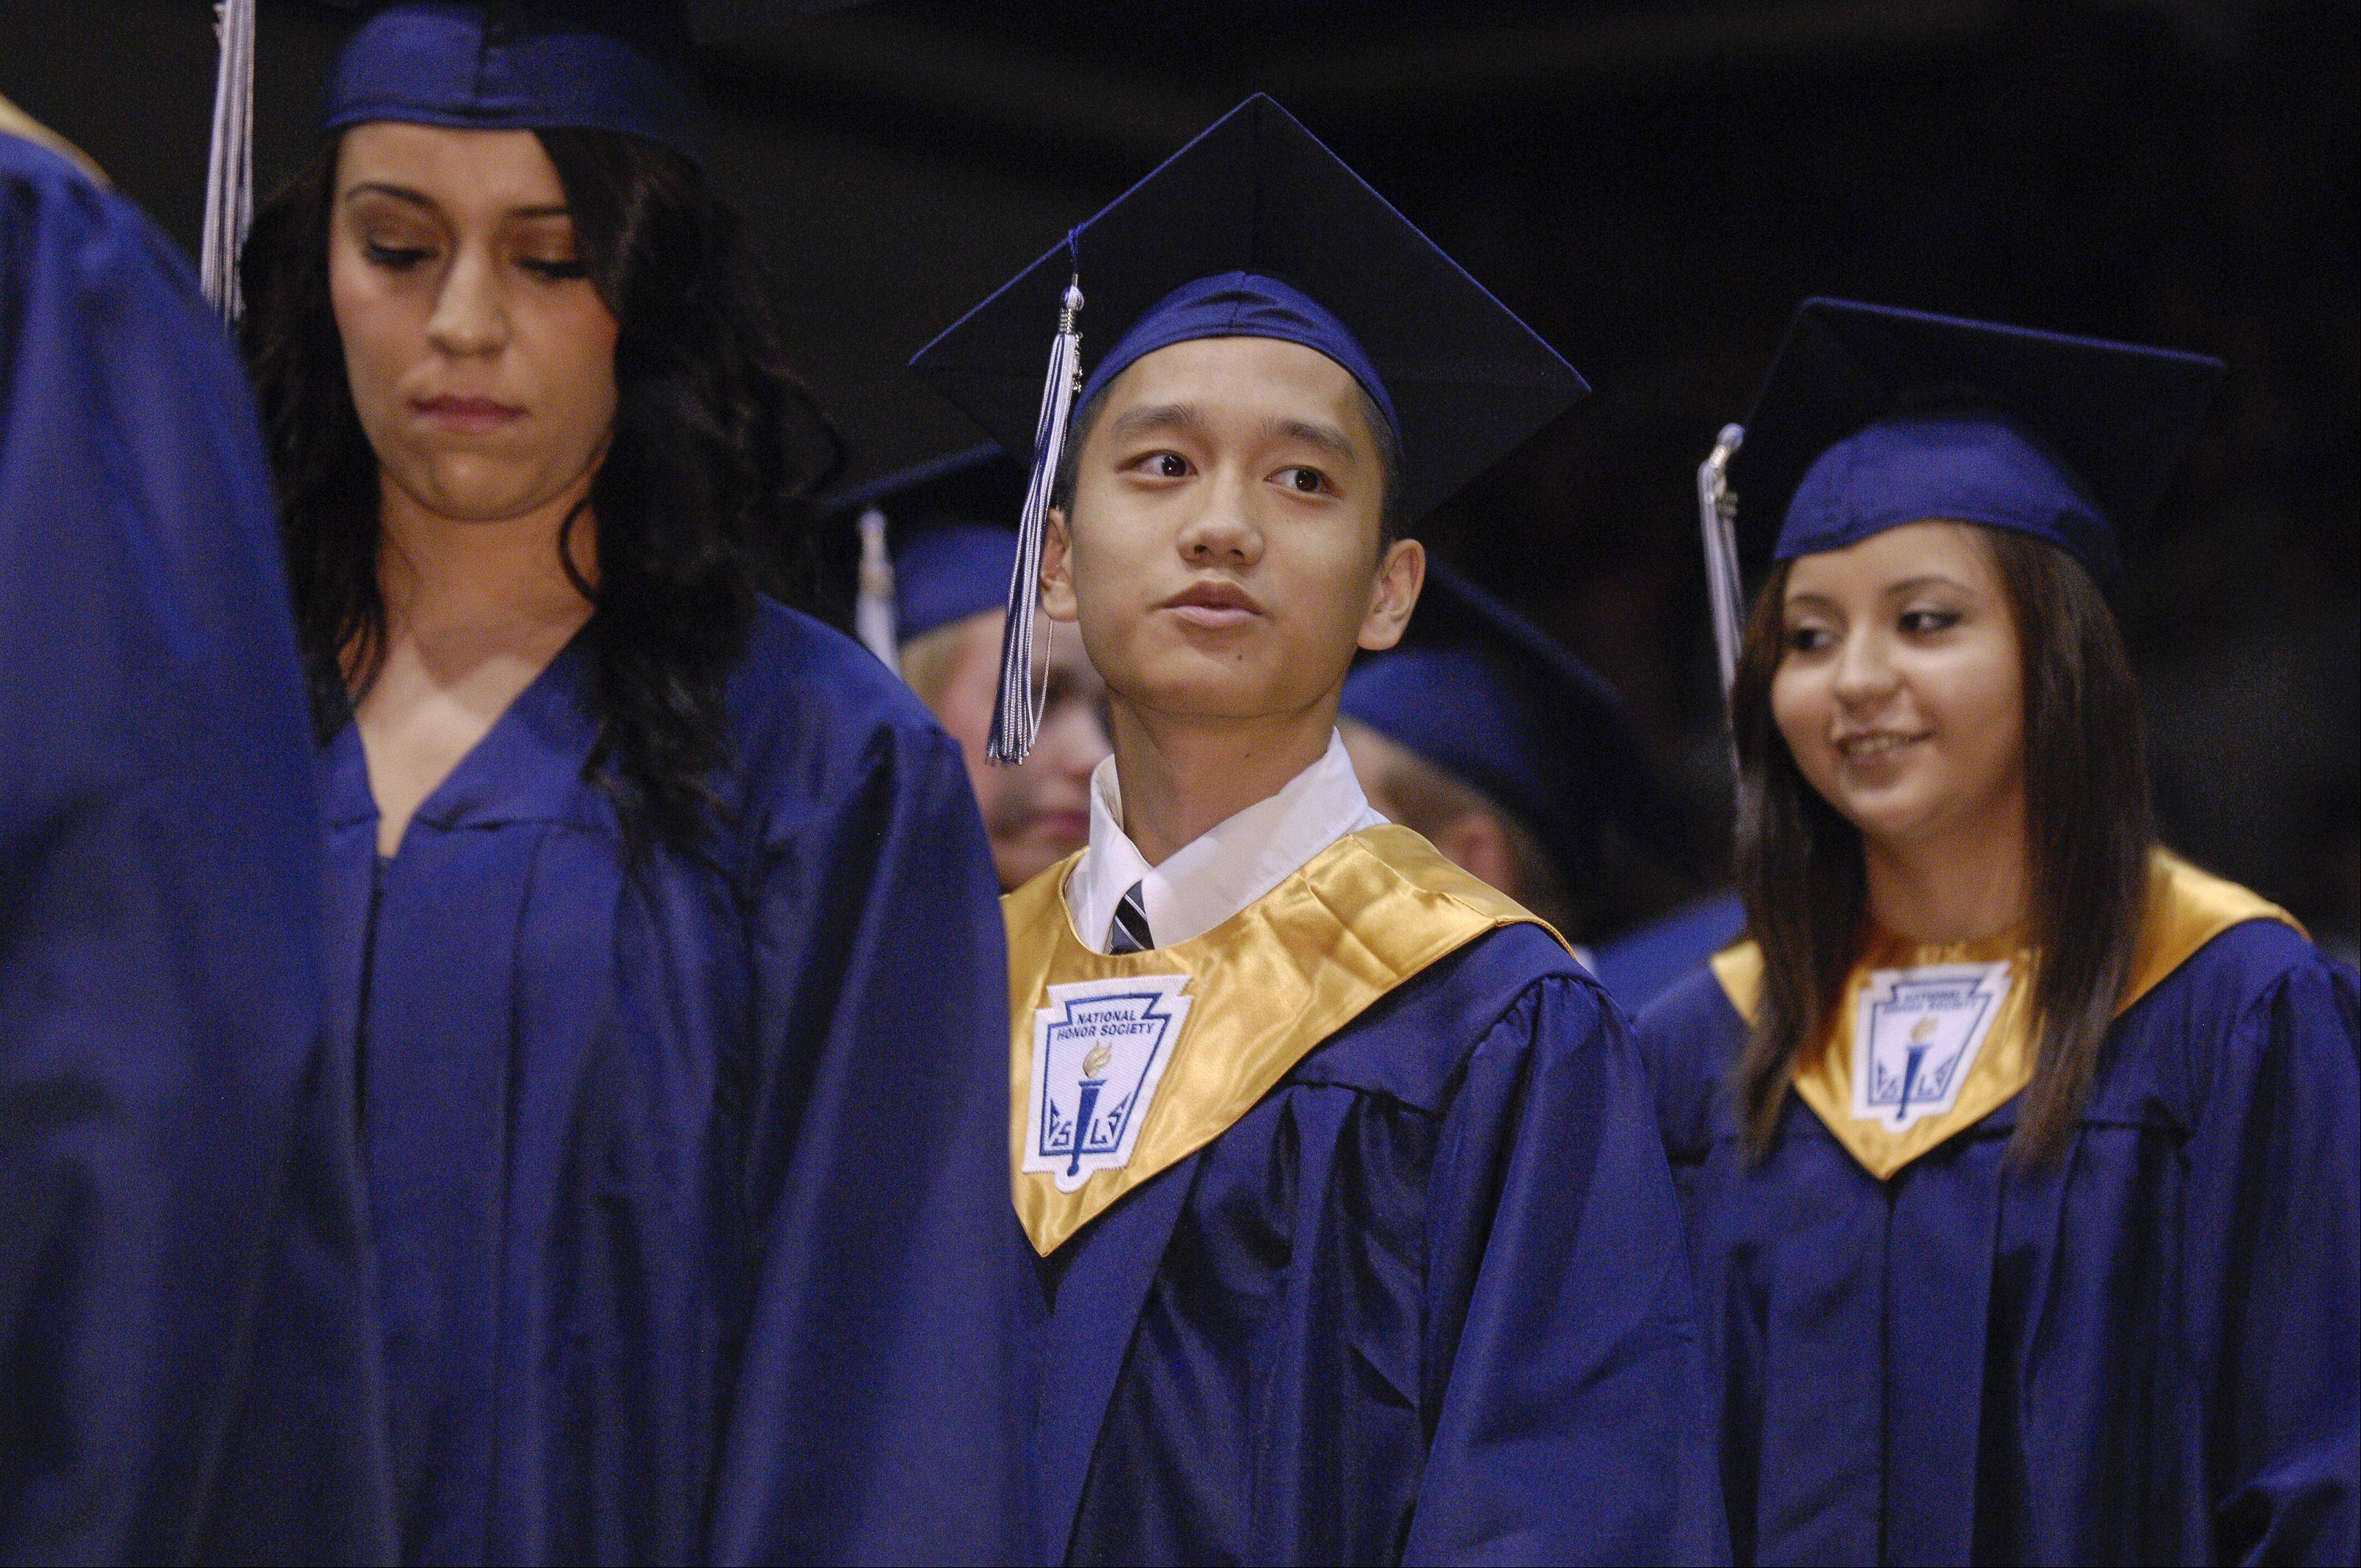 Images from the Addison Trail High School graduation on Sunday, June 9 at the school.